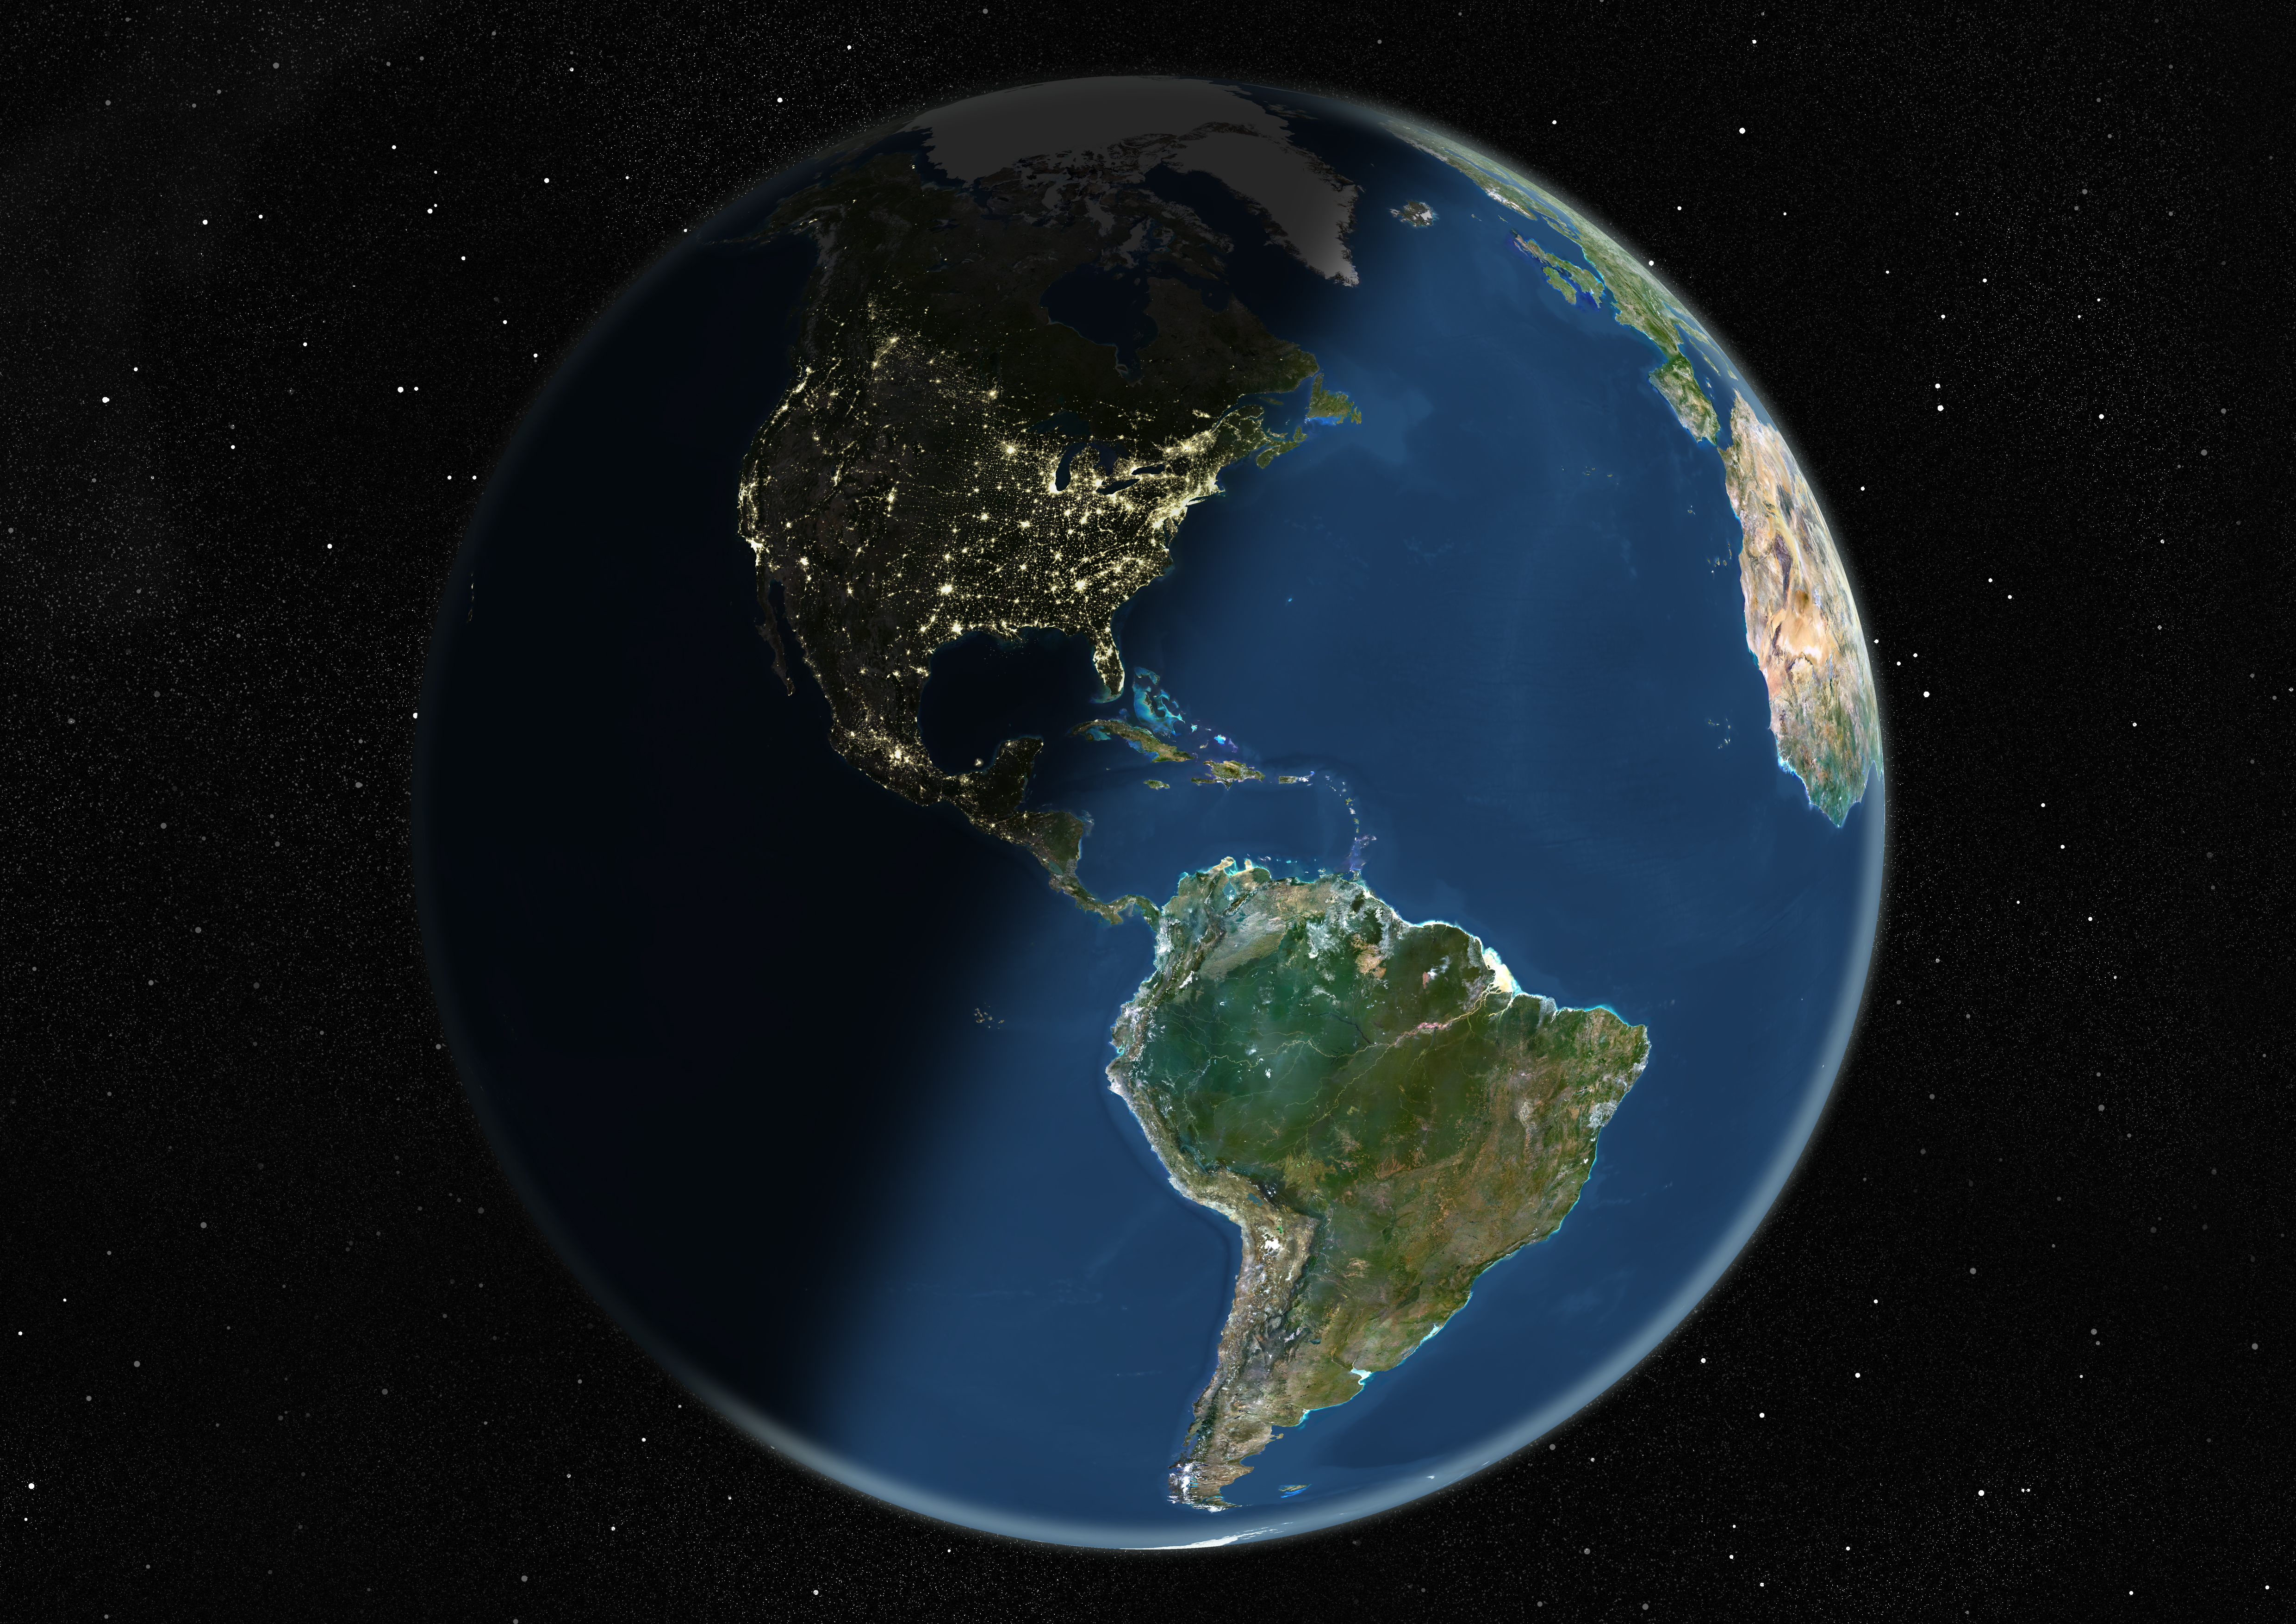 A satellite image of the Earth centered on the Americas, during winter solstice at 12 a.m. GMT. The image was compiled from data acquired by LANDSAT satellites.